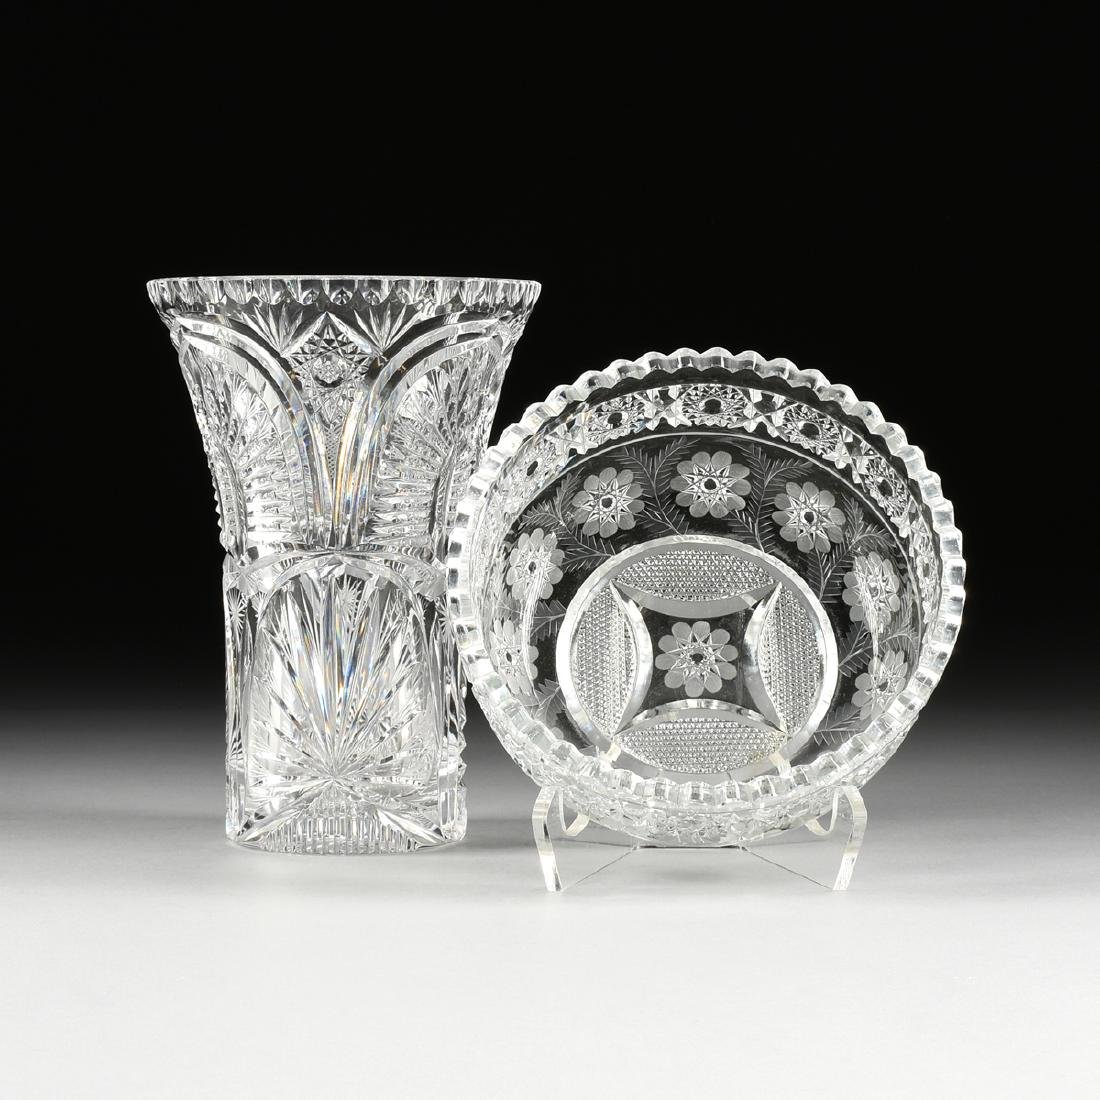 A GROUP OF TWO BRILLIANT CUT GLASS VESSELS, AMERICAN OR